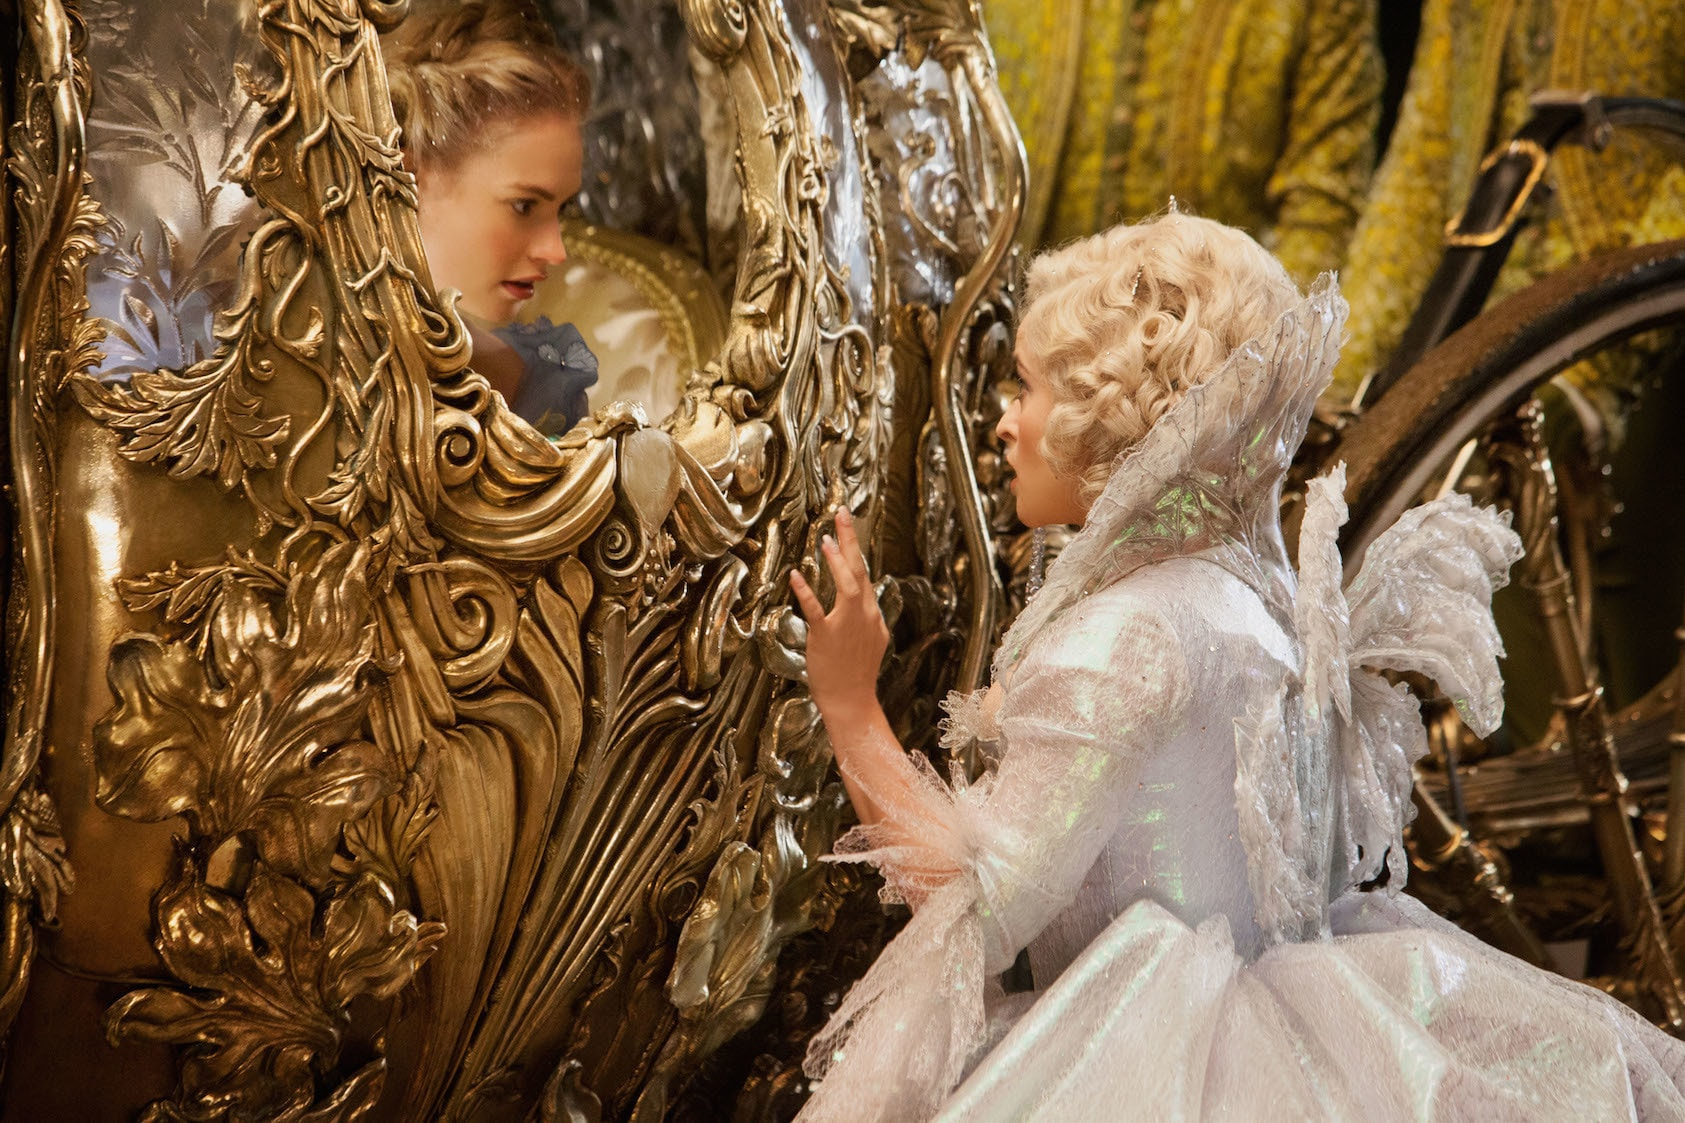 Actor Lily James (as Cinderella) in a carriage and actor Helena Bonham Carter (as the Fairy Godmother) waving in the movie Cinderella.